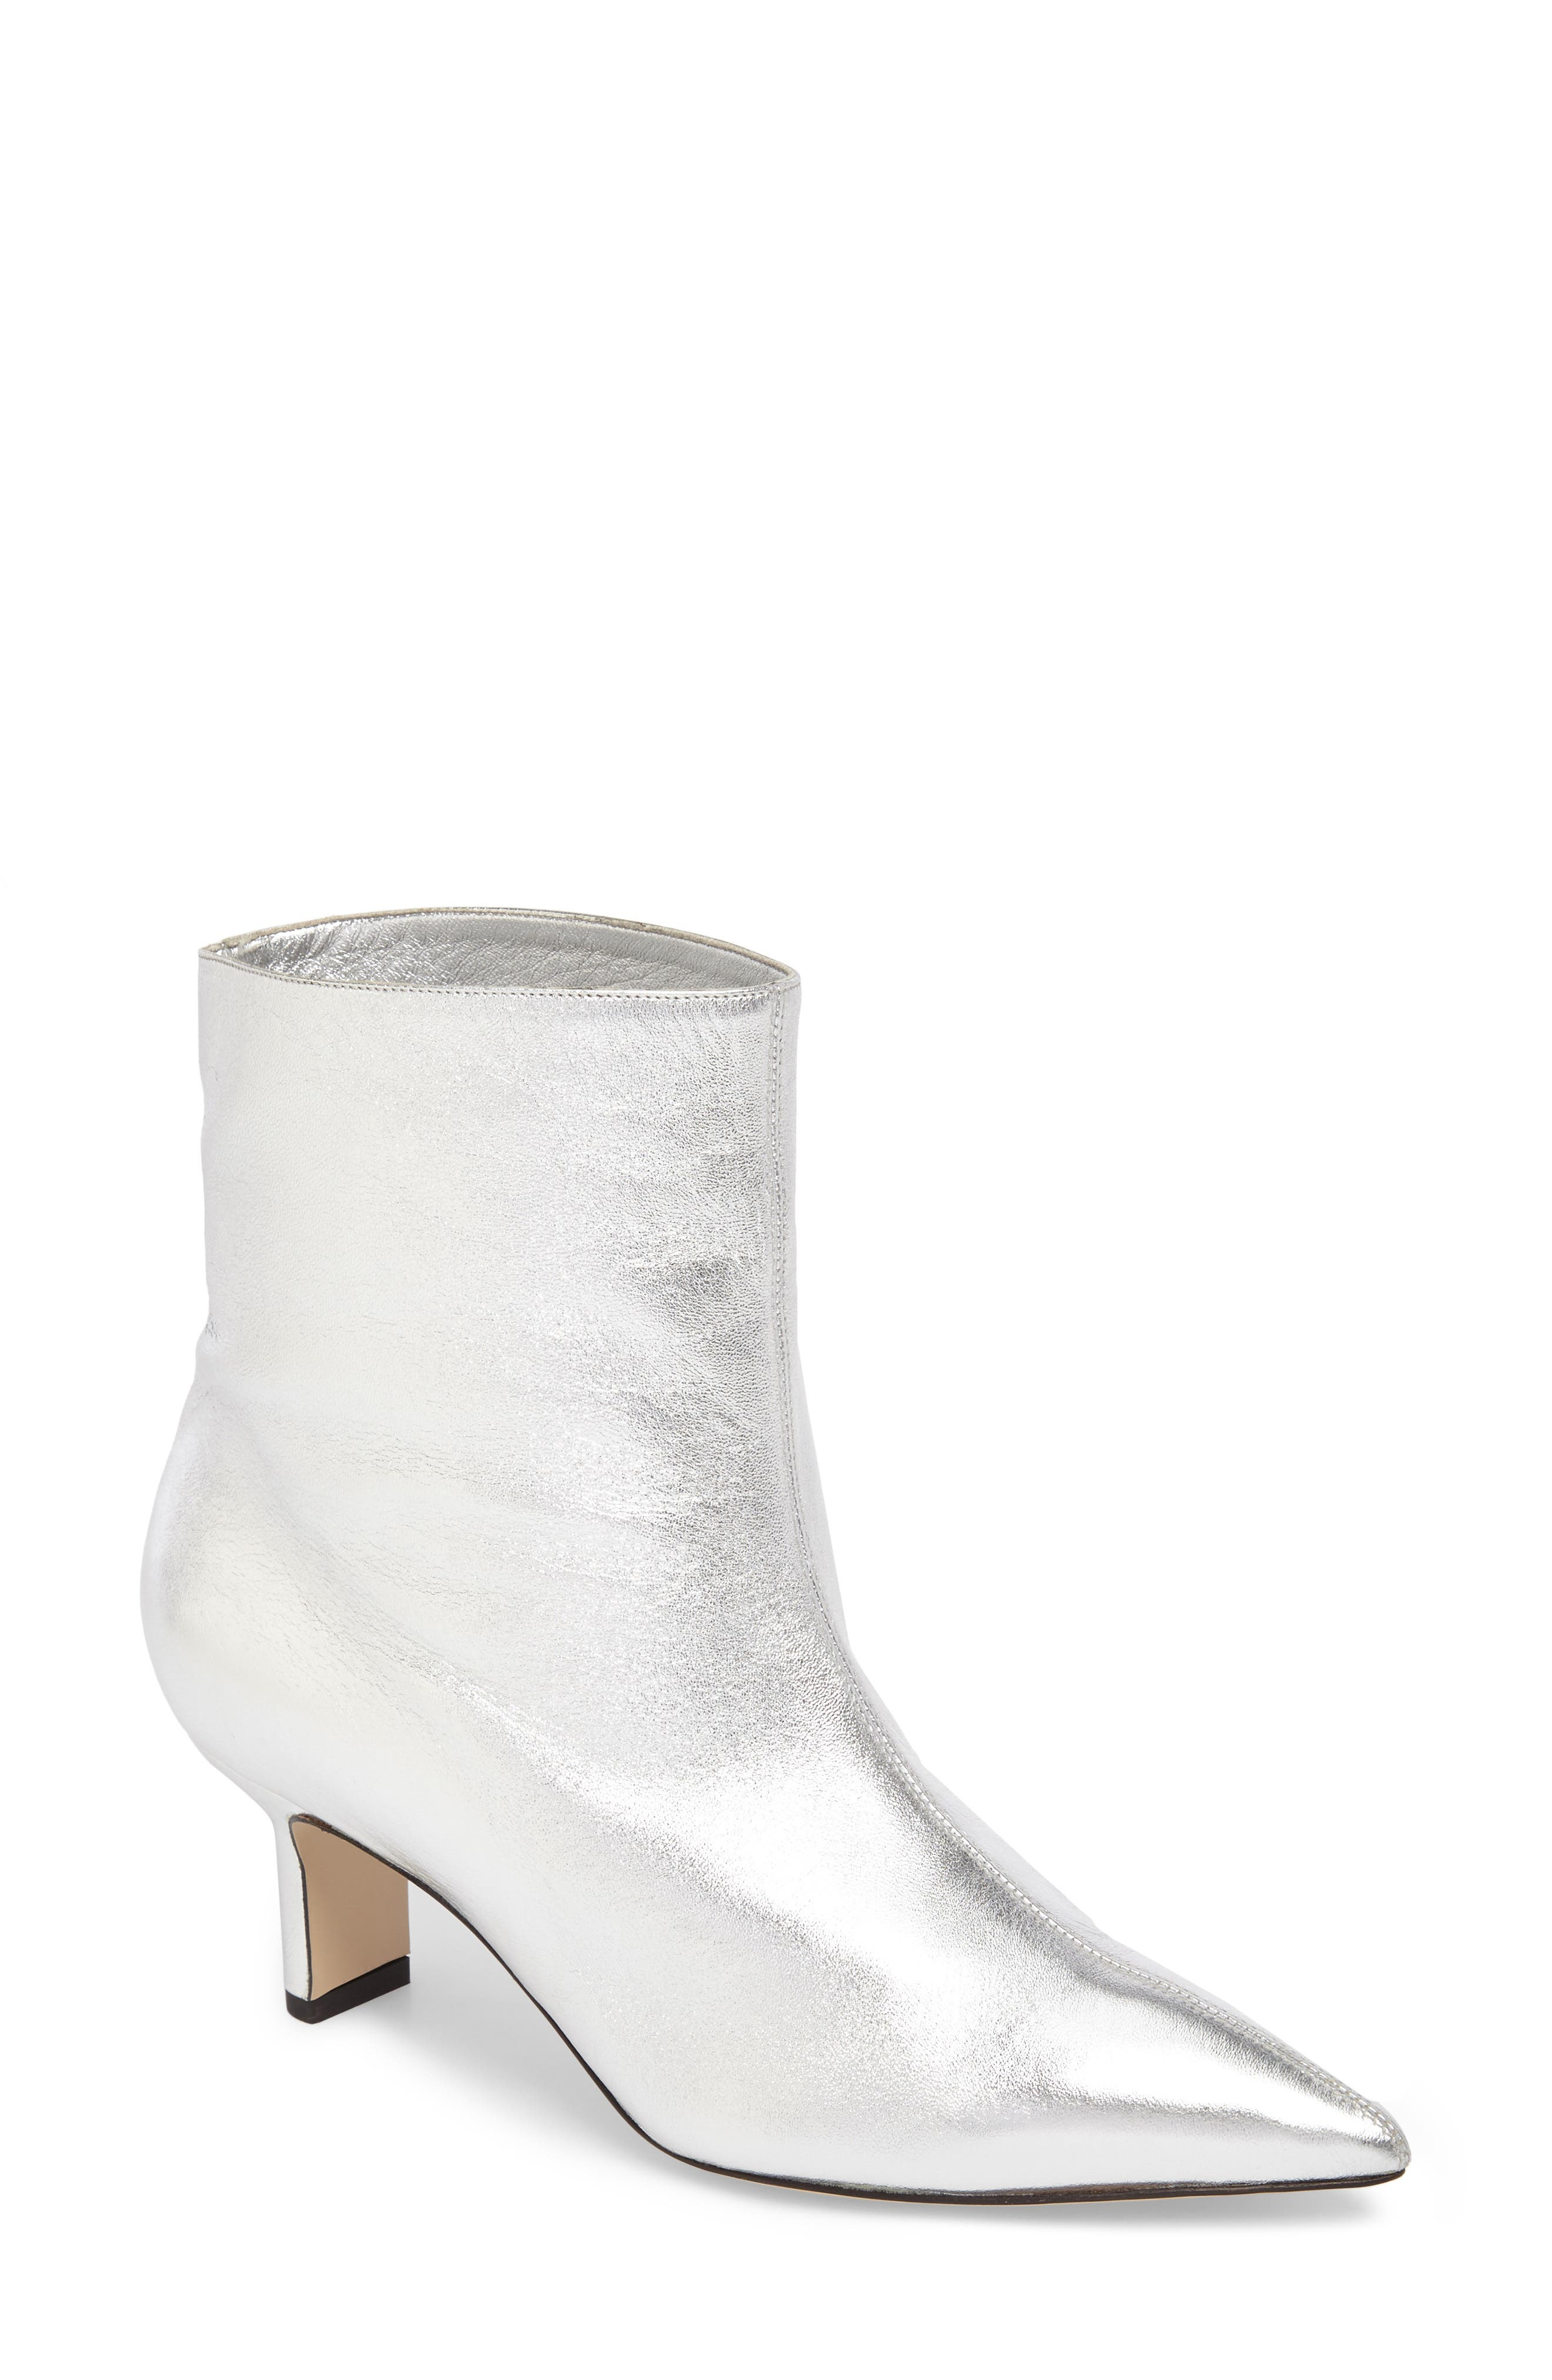 Mangold Pointy Toe Boot,                         Main,                         color, 040